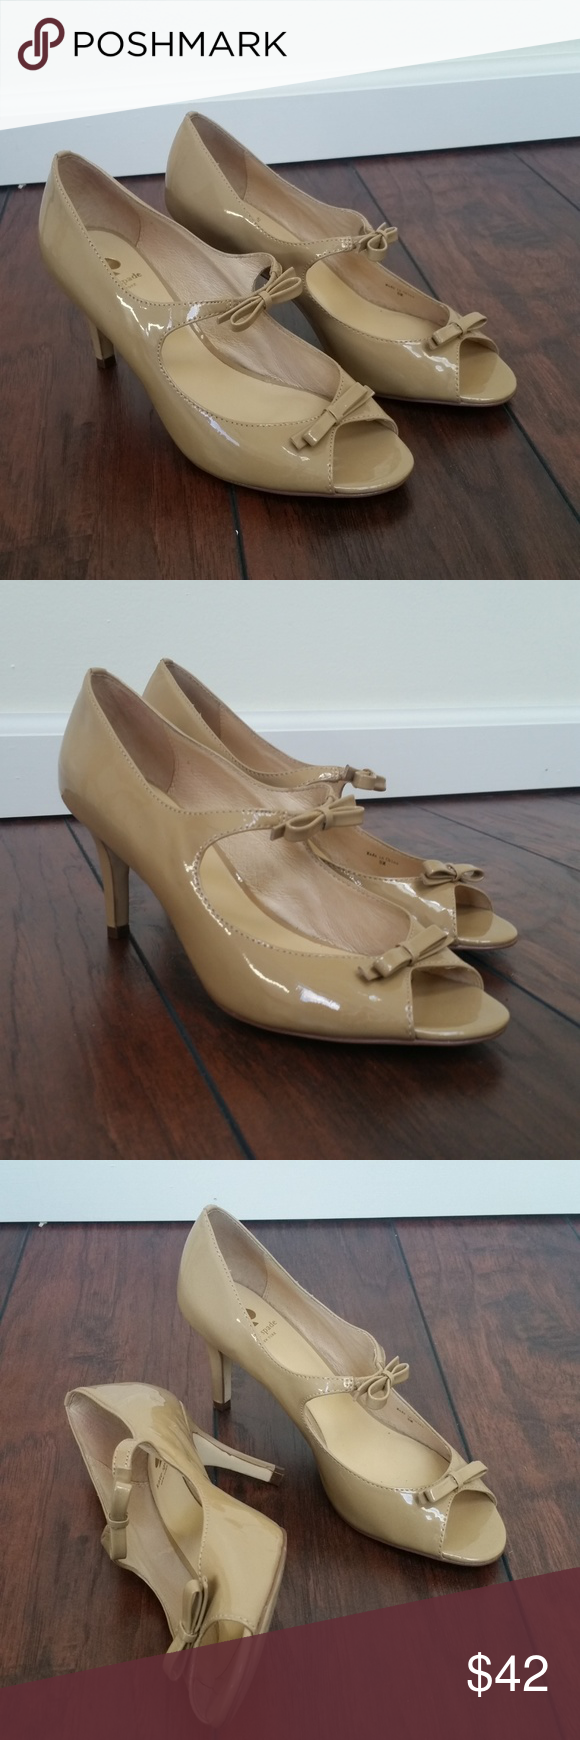 770bb9b324e8 Kate Spade Patent Leather Pumps Bows Nude Excellent pre-owned condition.  Please see pictures. kate spade Shoes